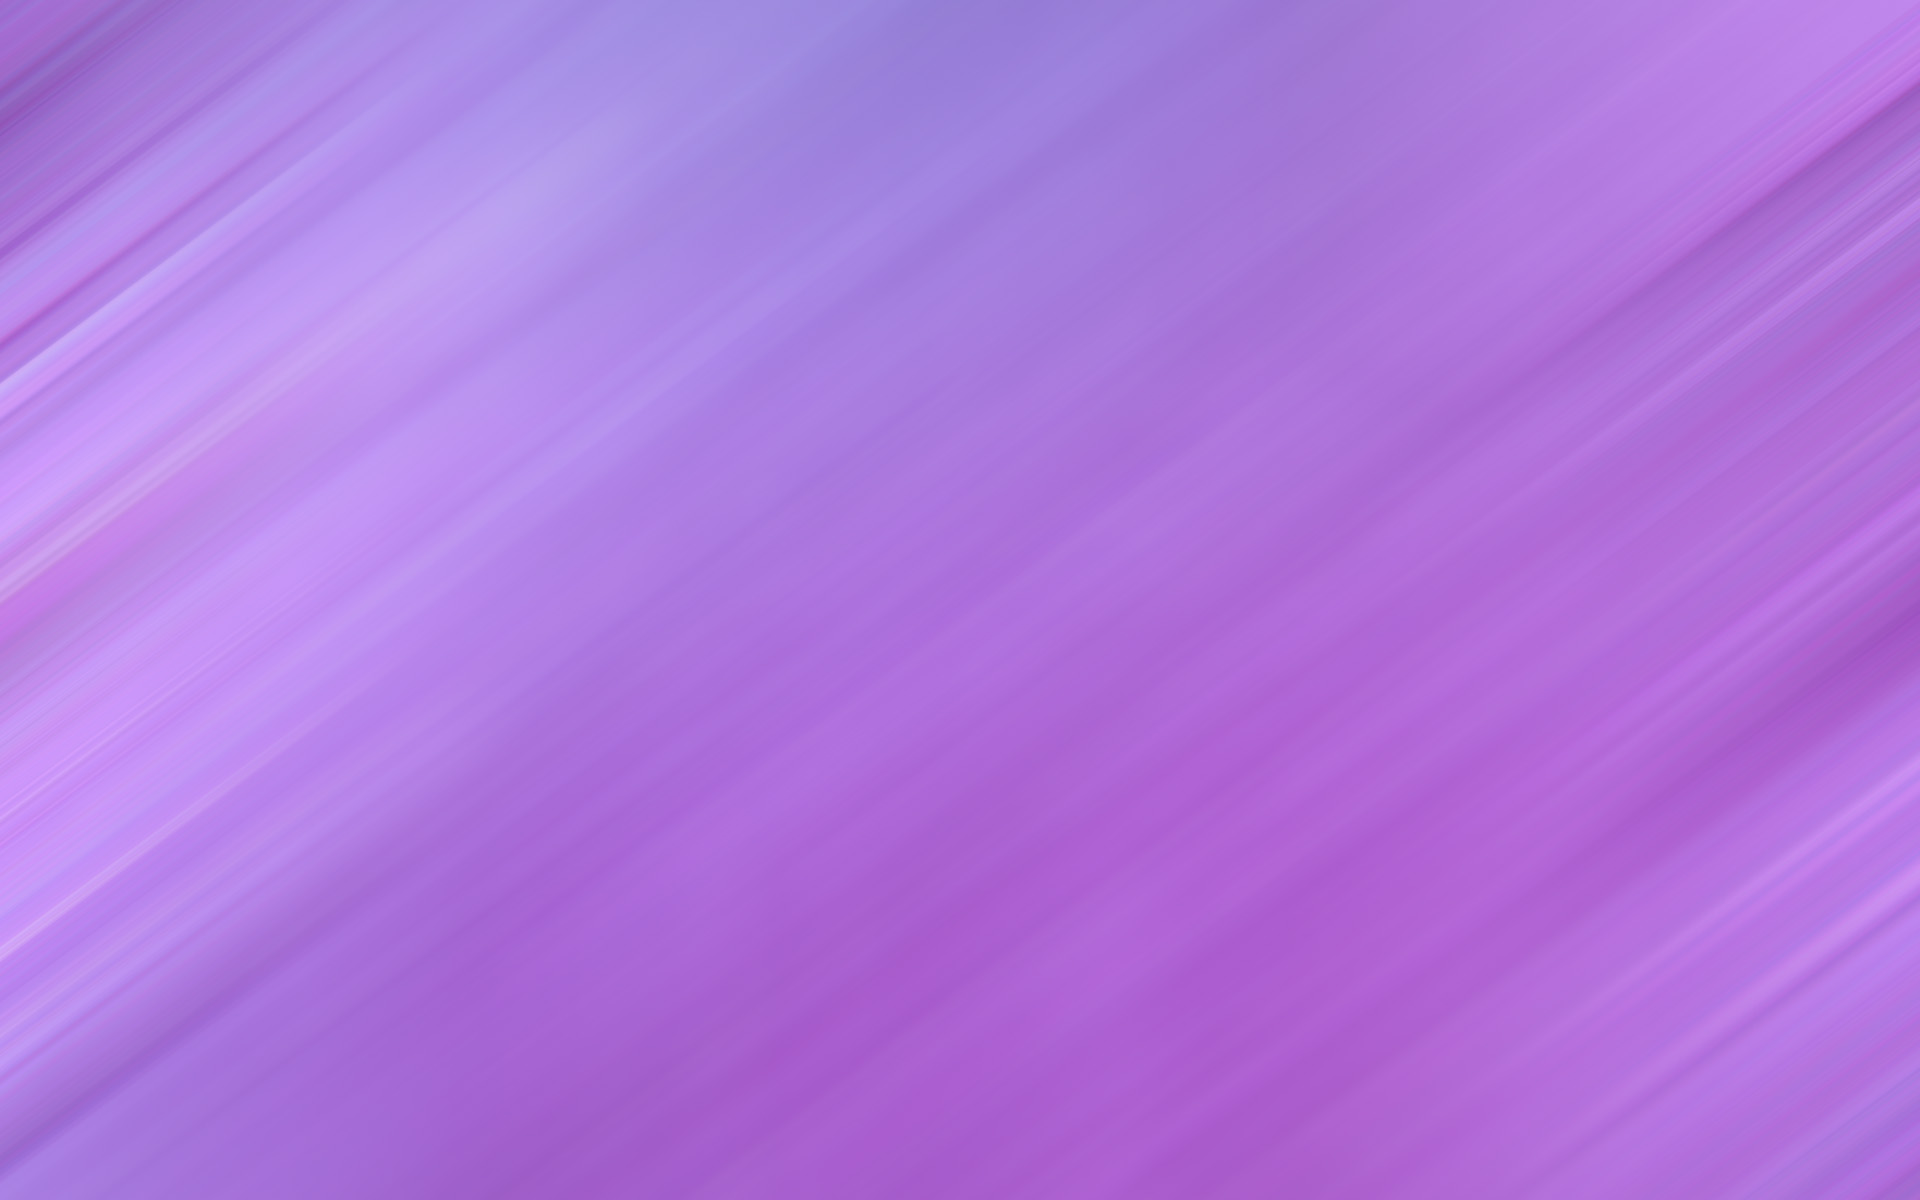 30 HD Purple Wallpapers